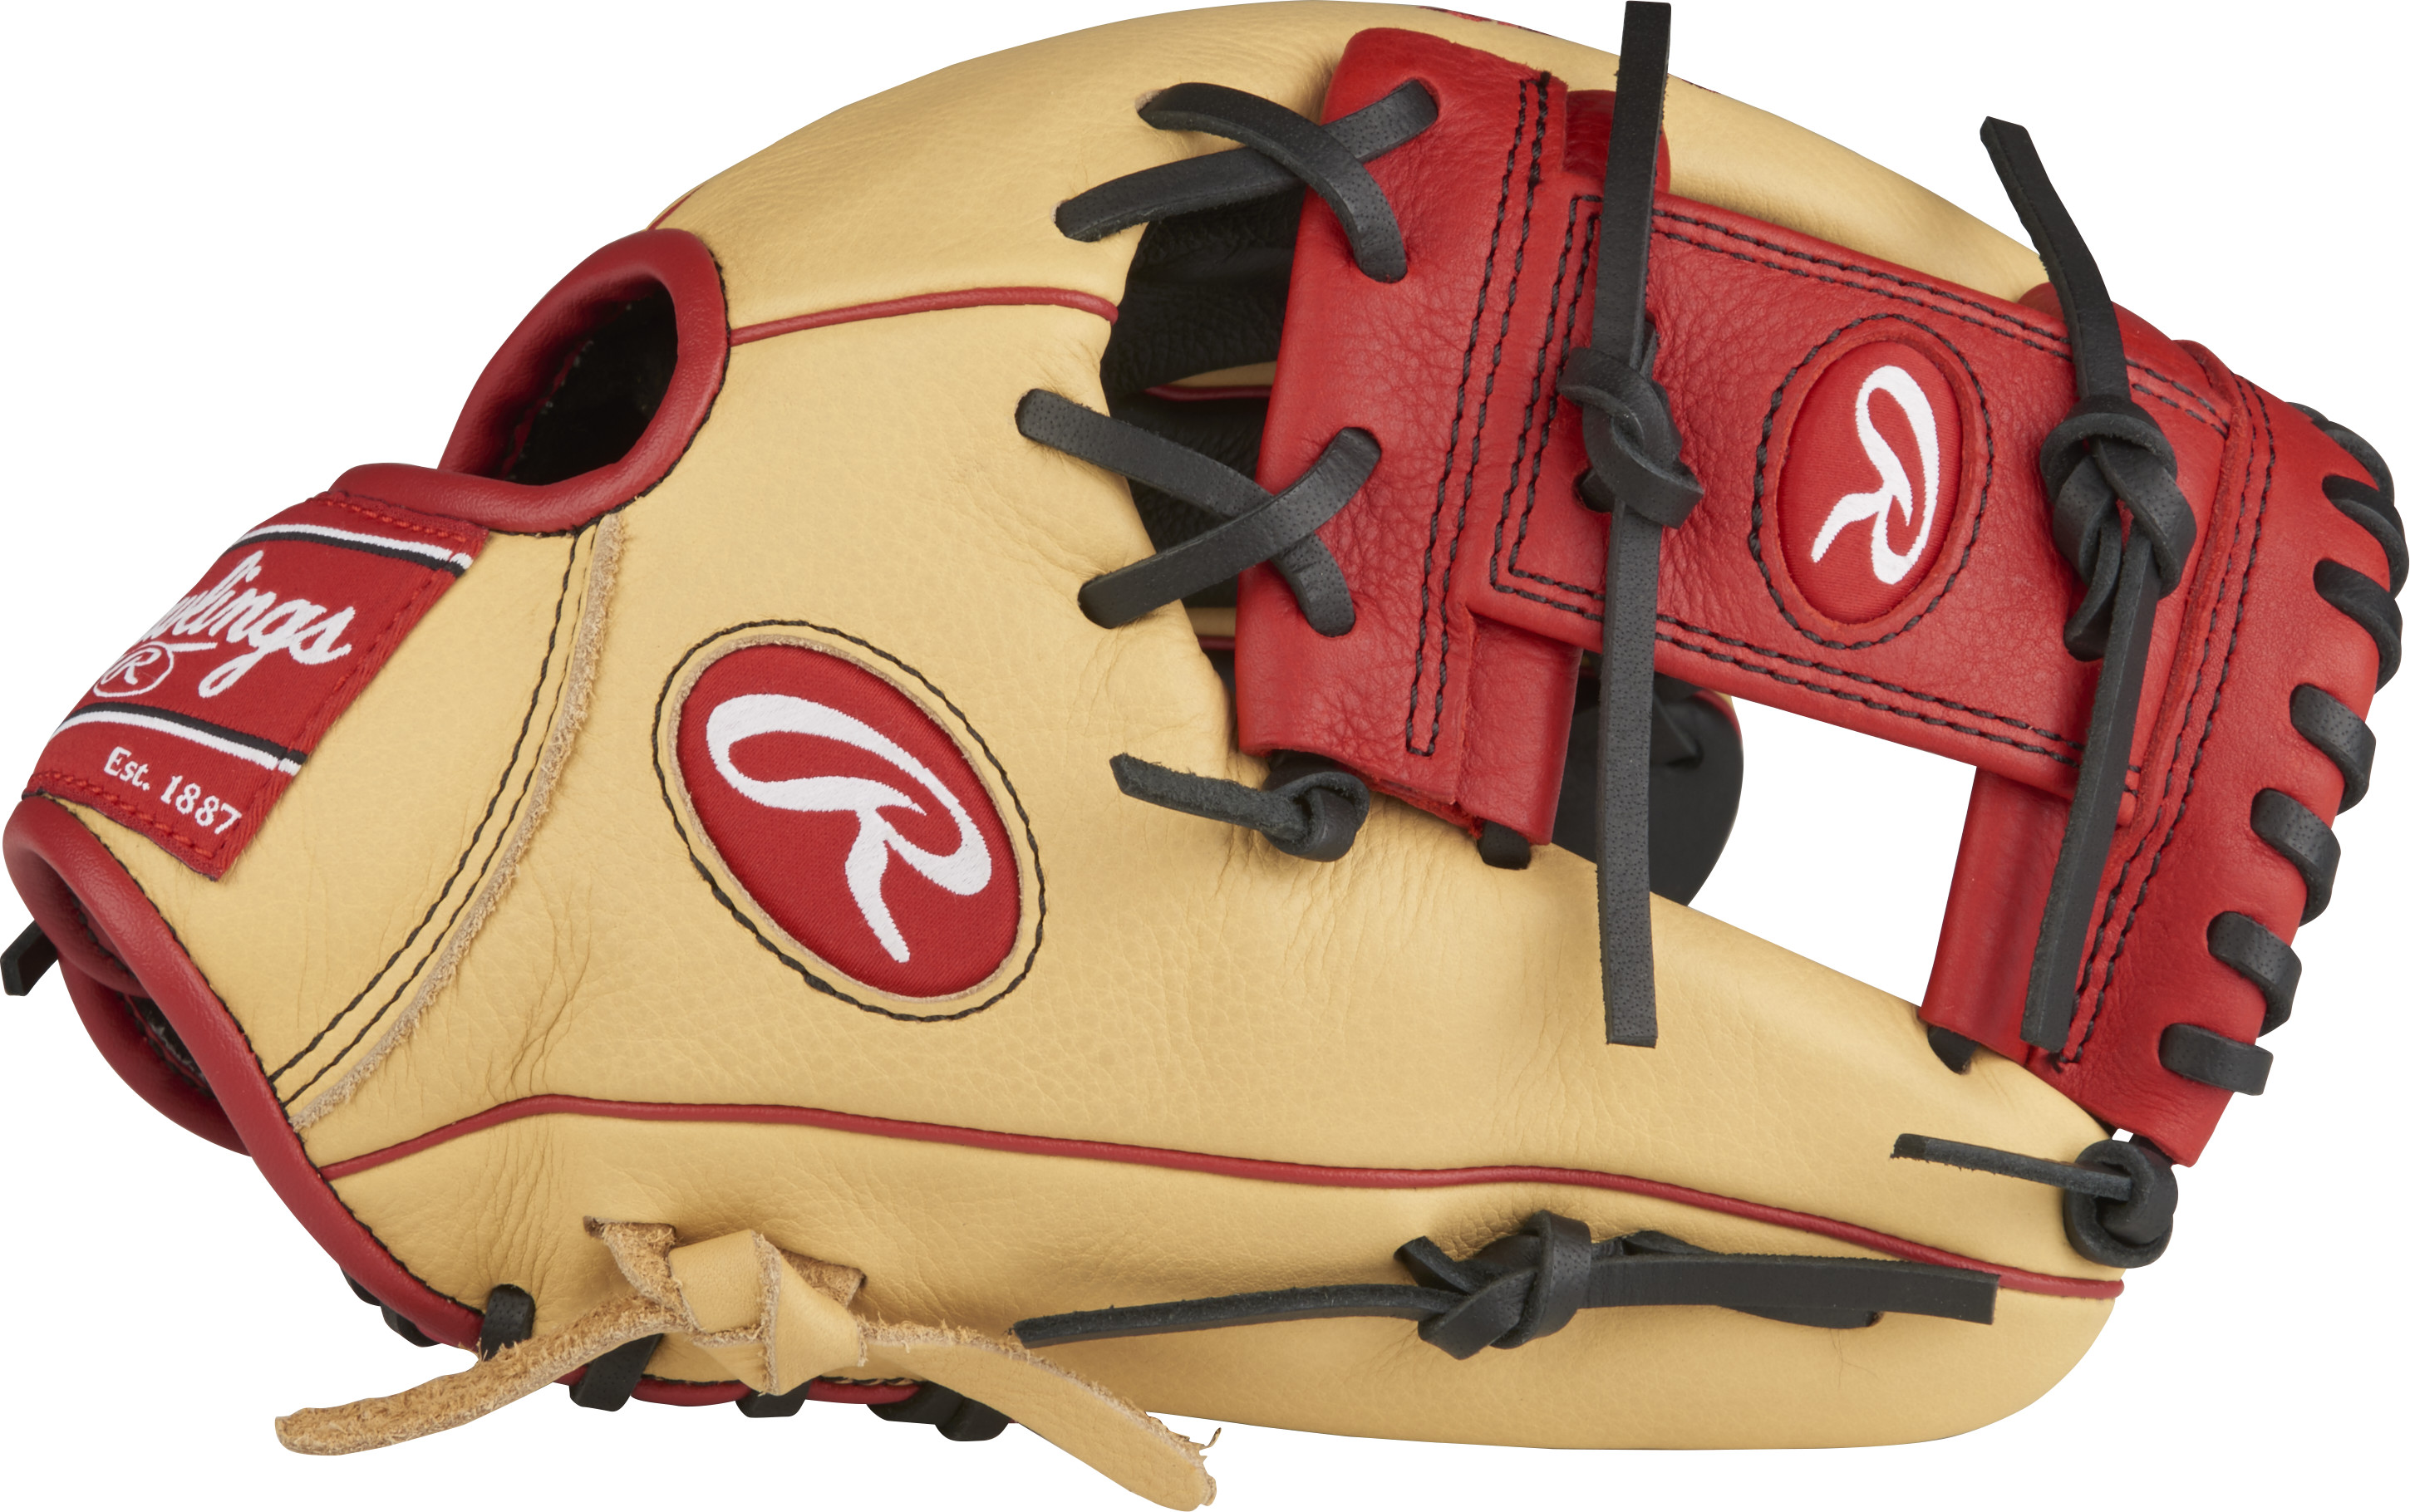 http://www.bestbatdeals.com/images/gloves/rawlings/SPL112AR-3.jpg